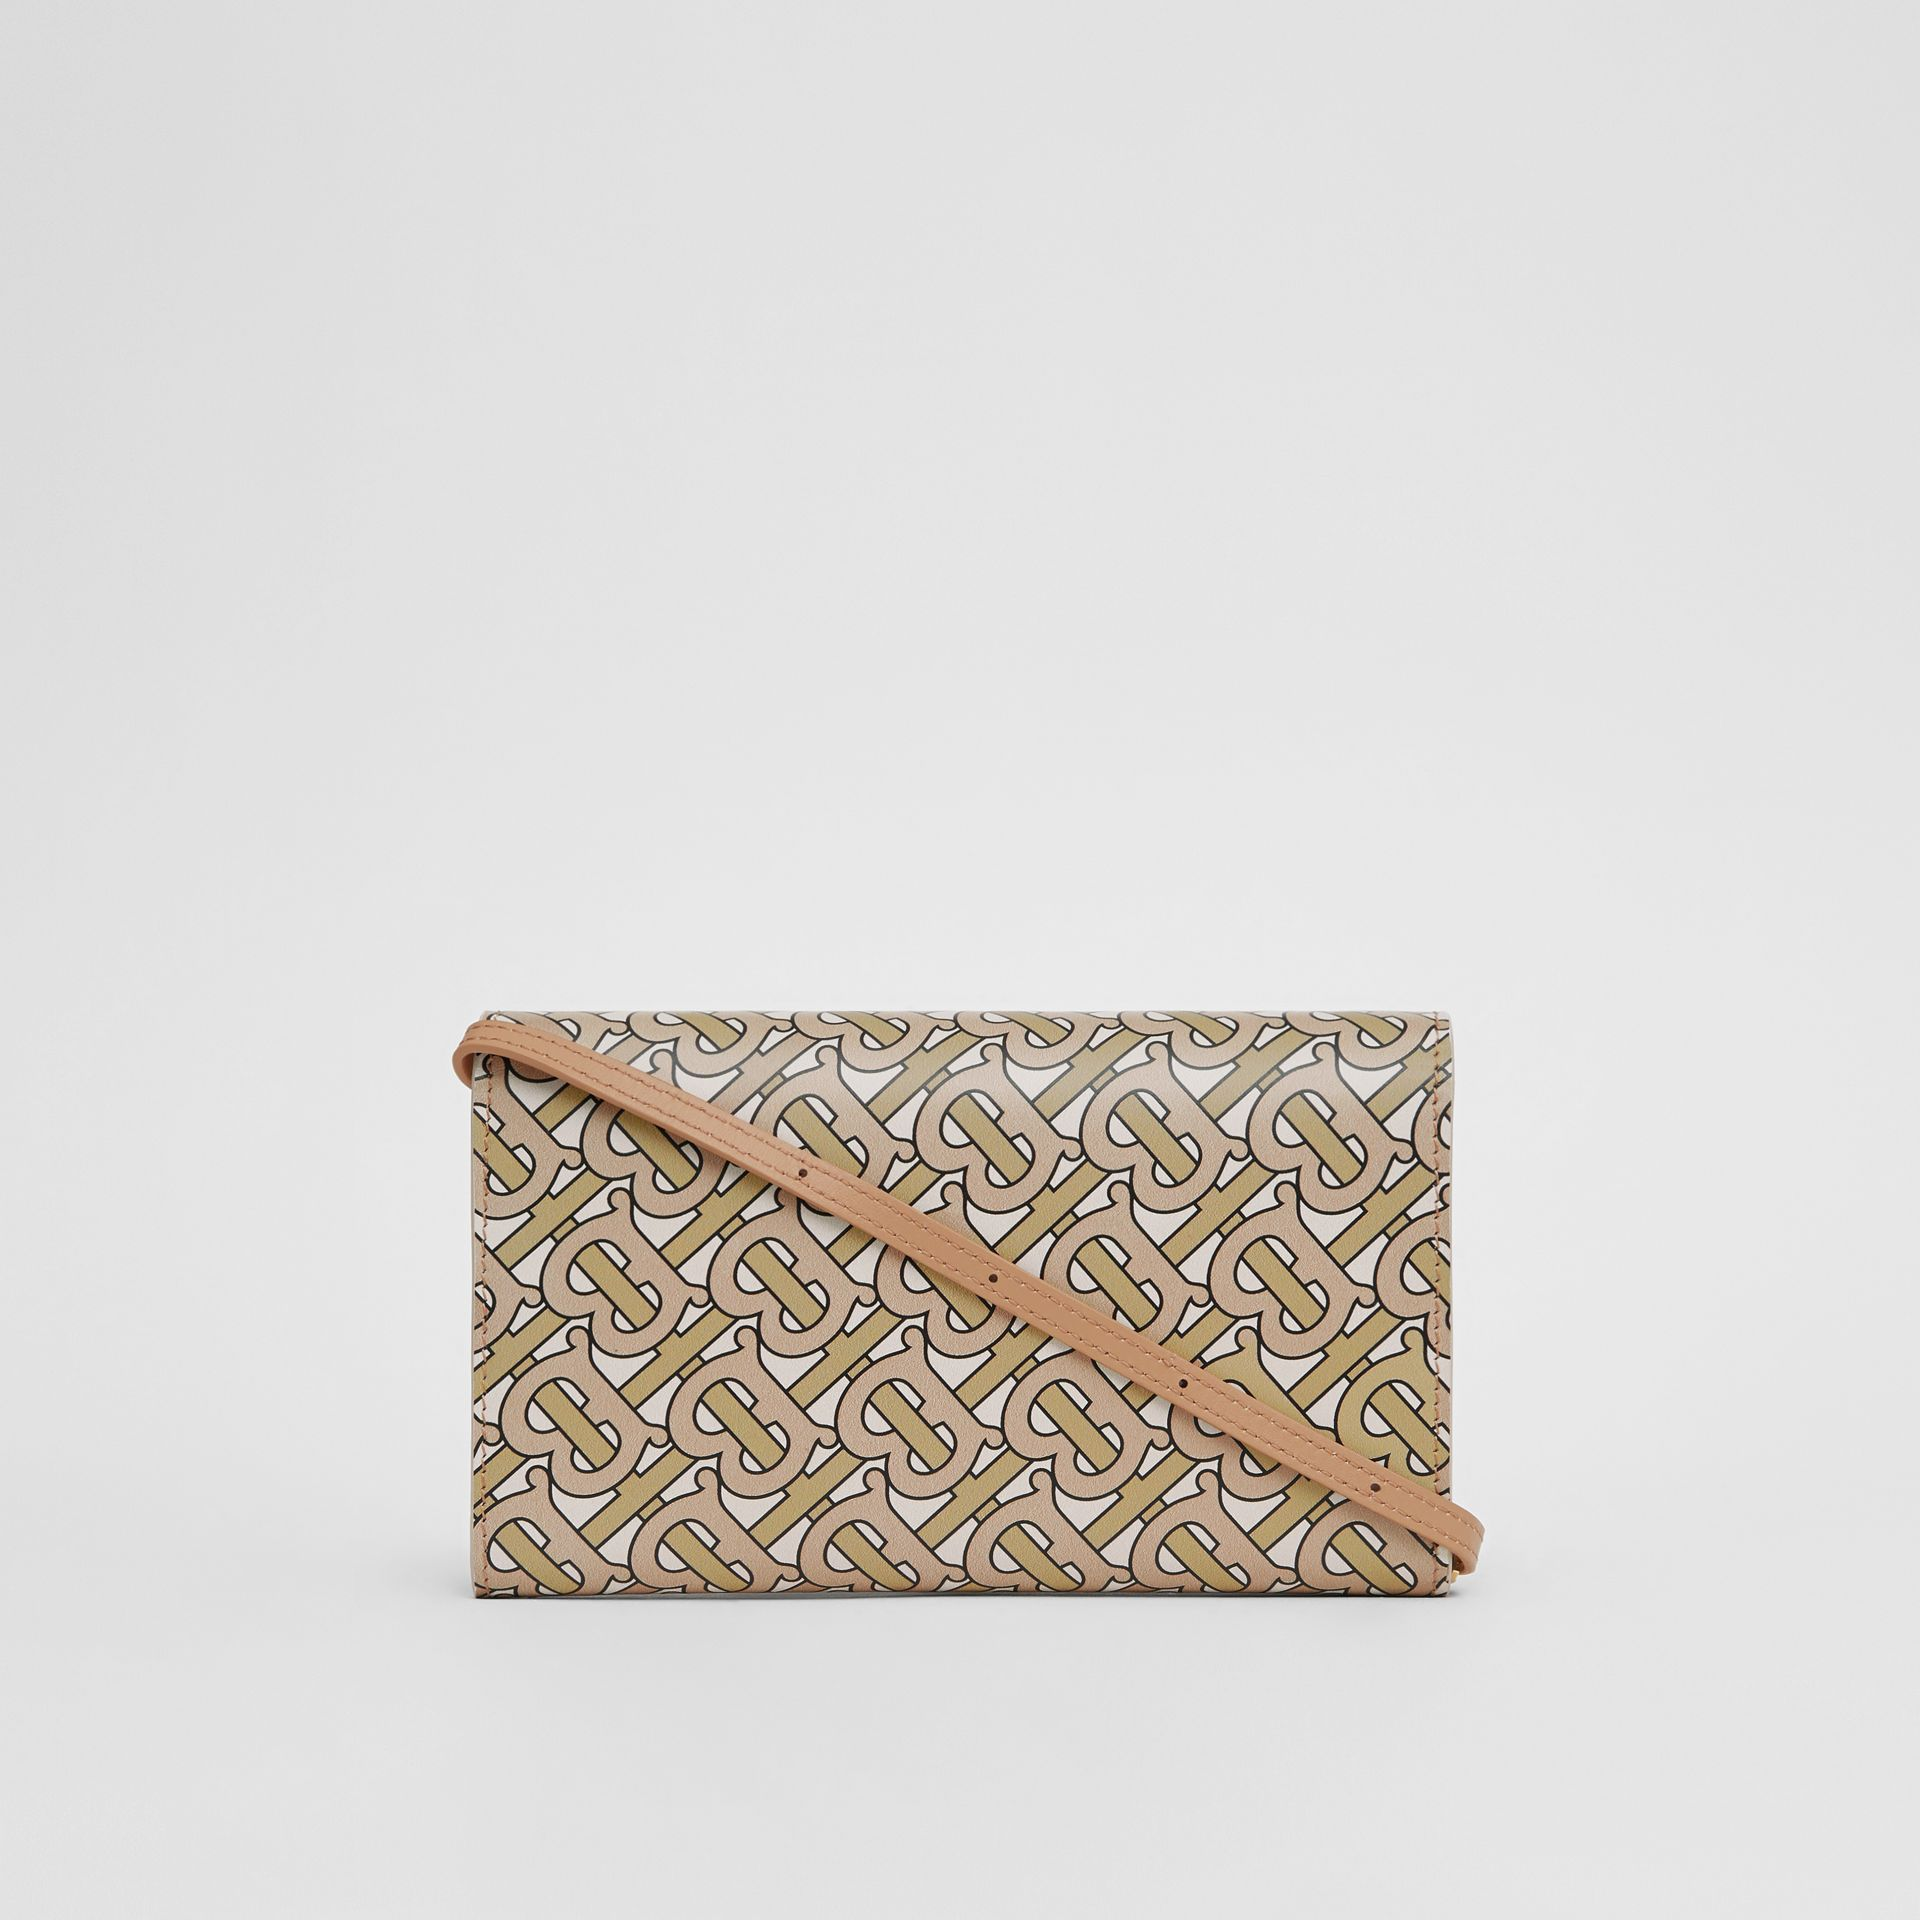 Monogram Print Leather Wallet with Detachable Strap in Beige - Women | Burberry - gallery image 7